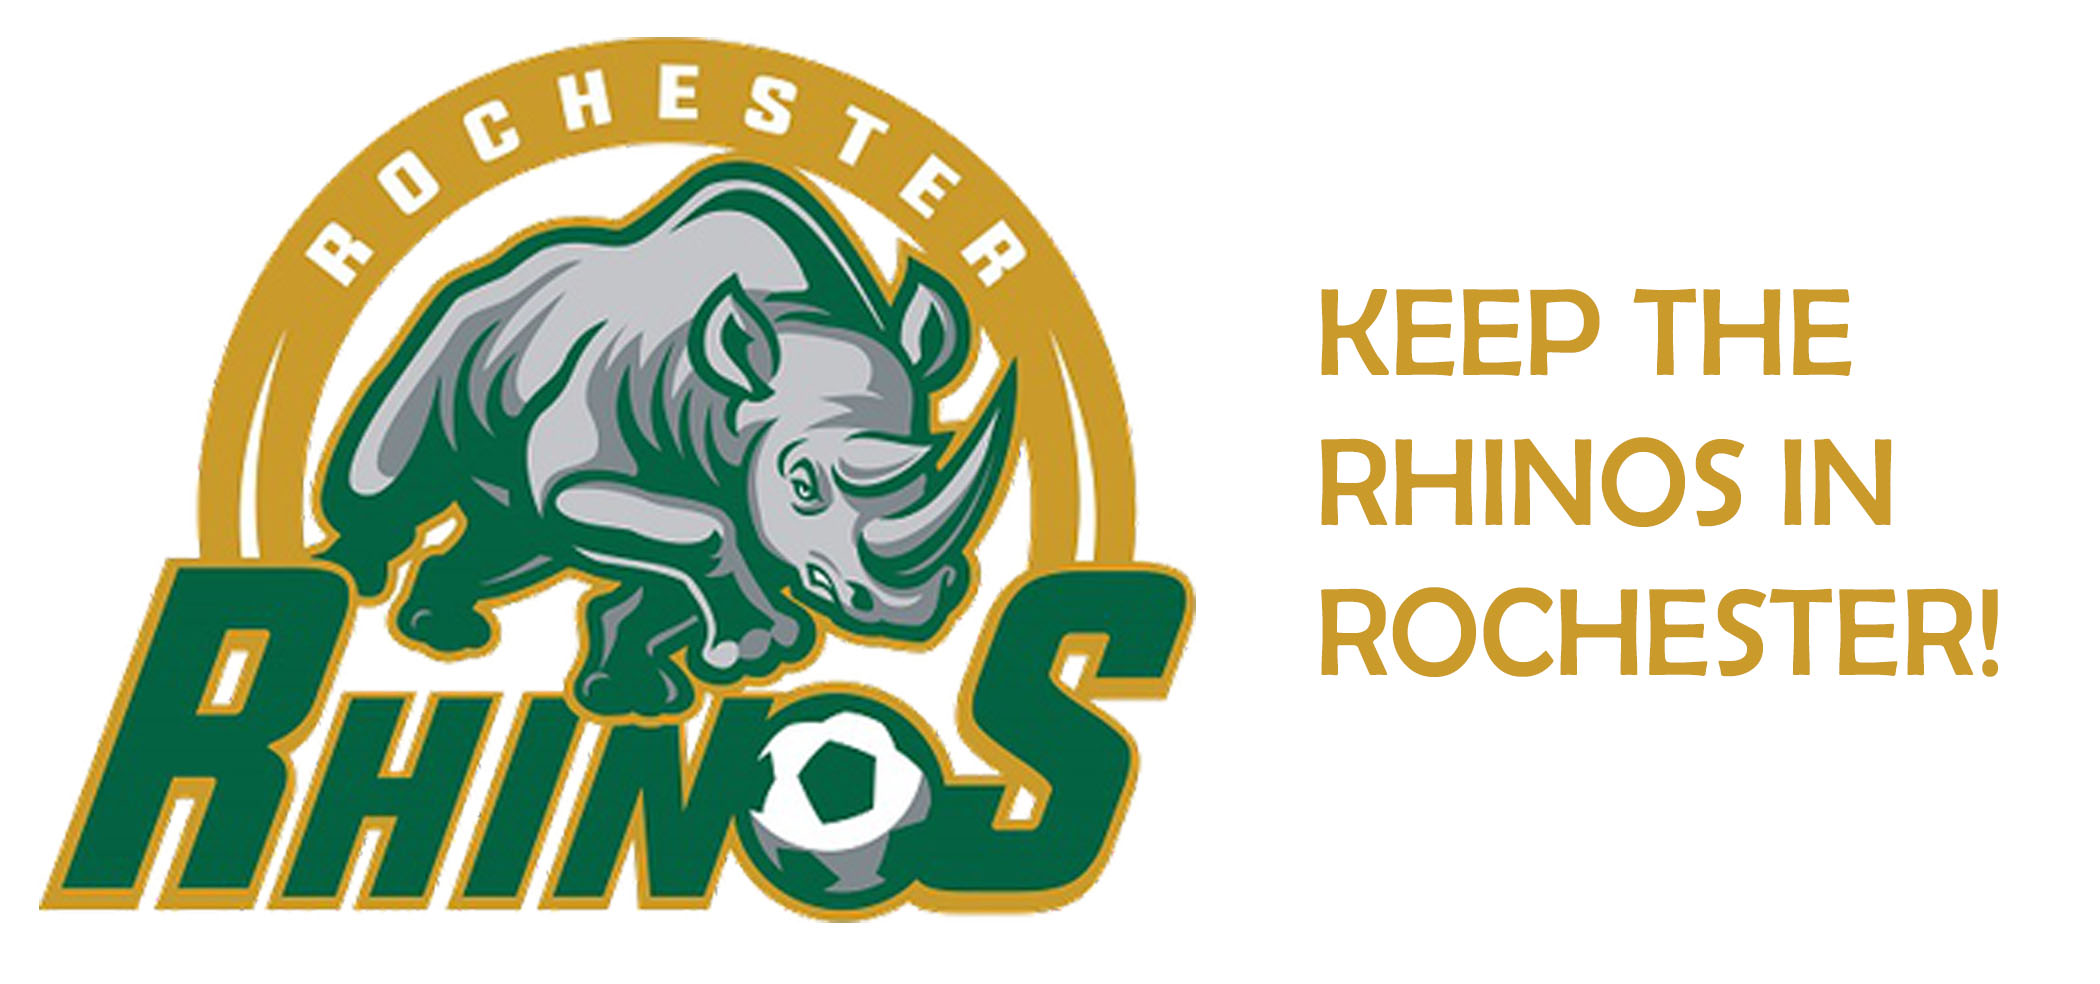 The Rochester Rhinos Need Your Support!